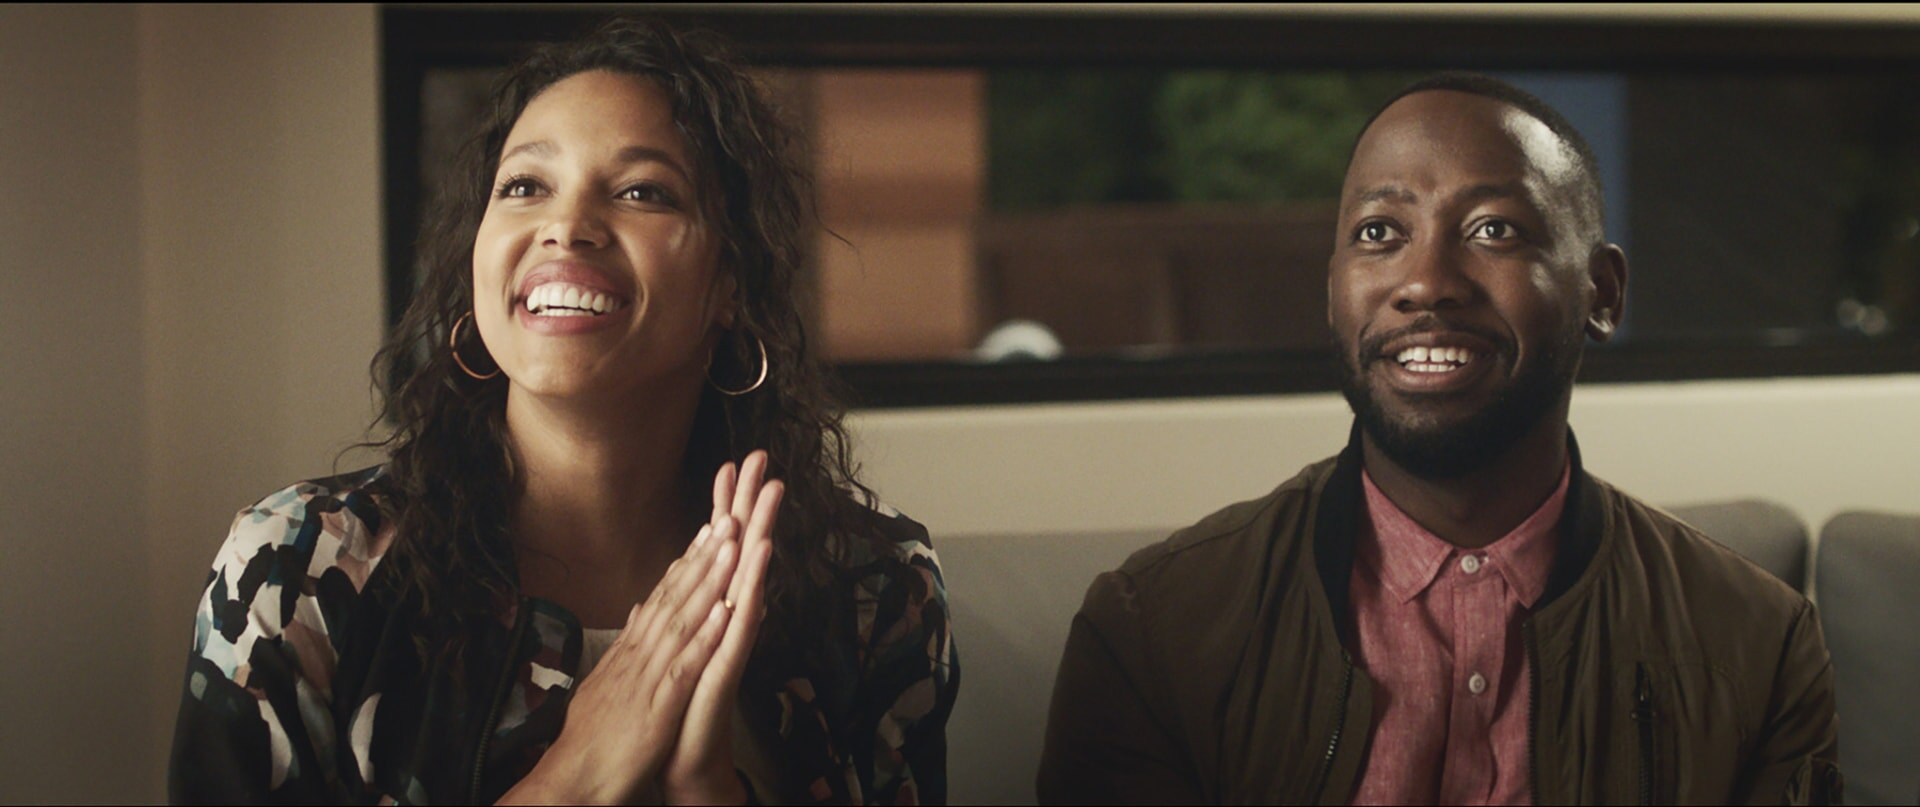 """KYLIE BUNBURY as Michelle and LAMORNE MORRIS as Kevin in New Line Cinema's action comedy """"GAME NIGHT,"""" a Warner Bros. Pictures release."""